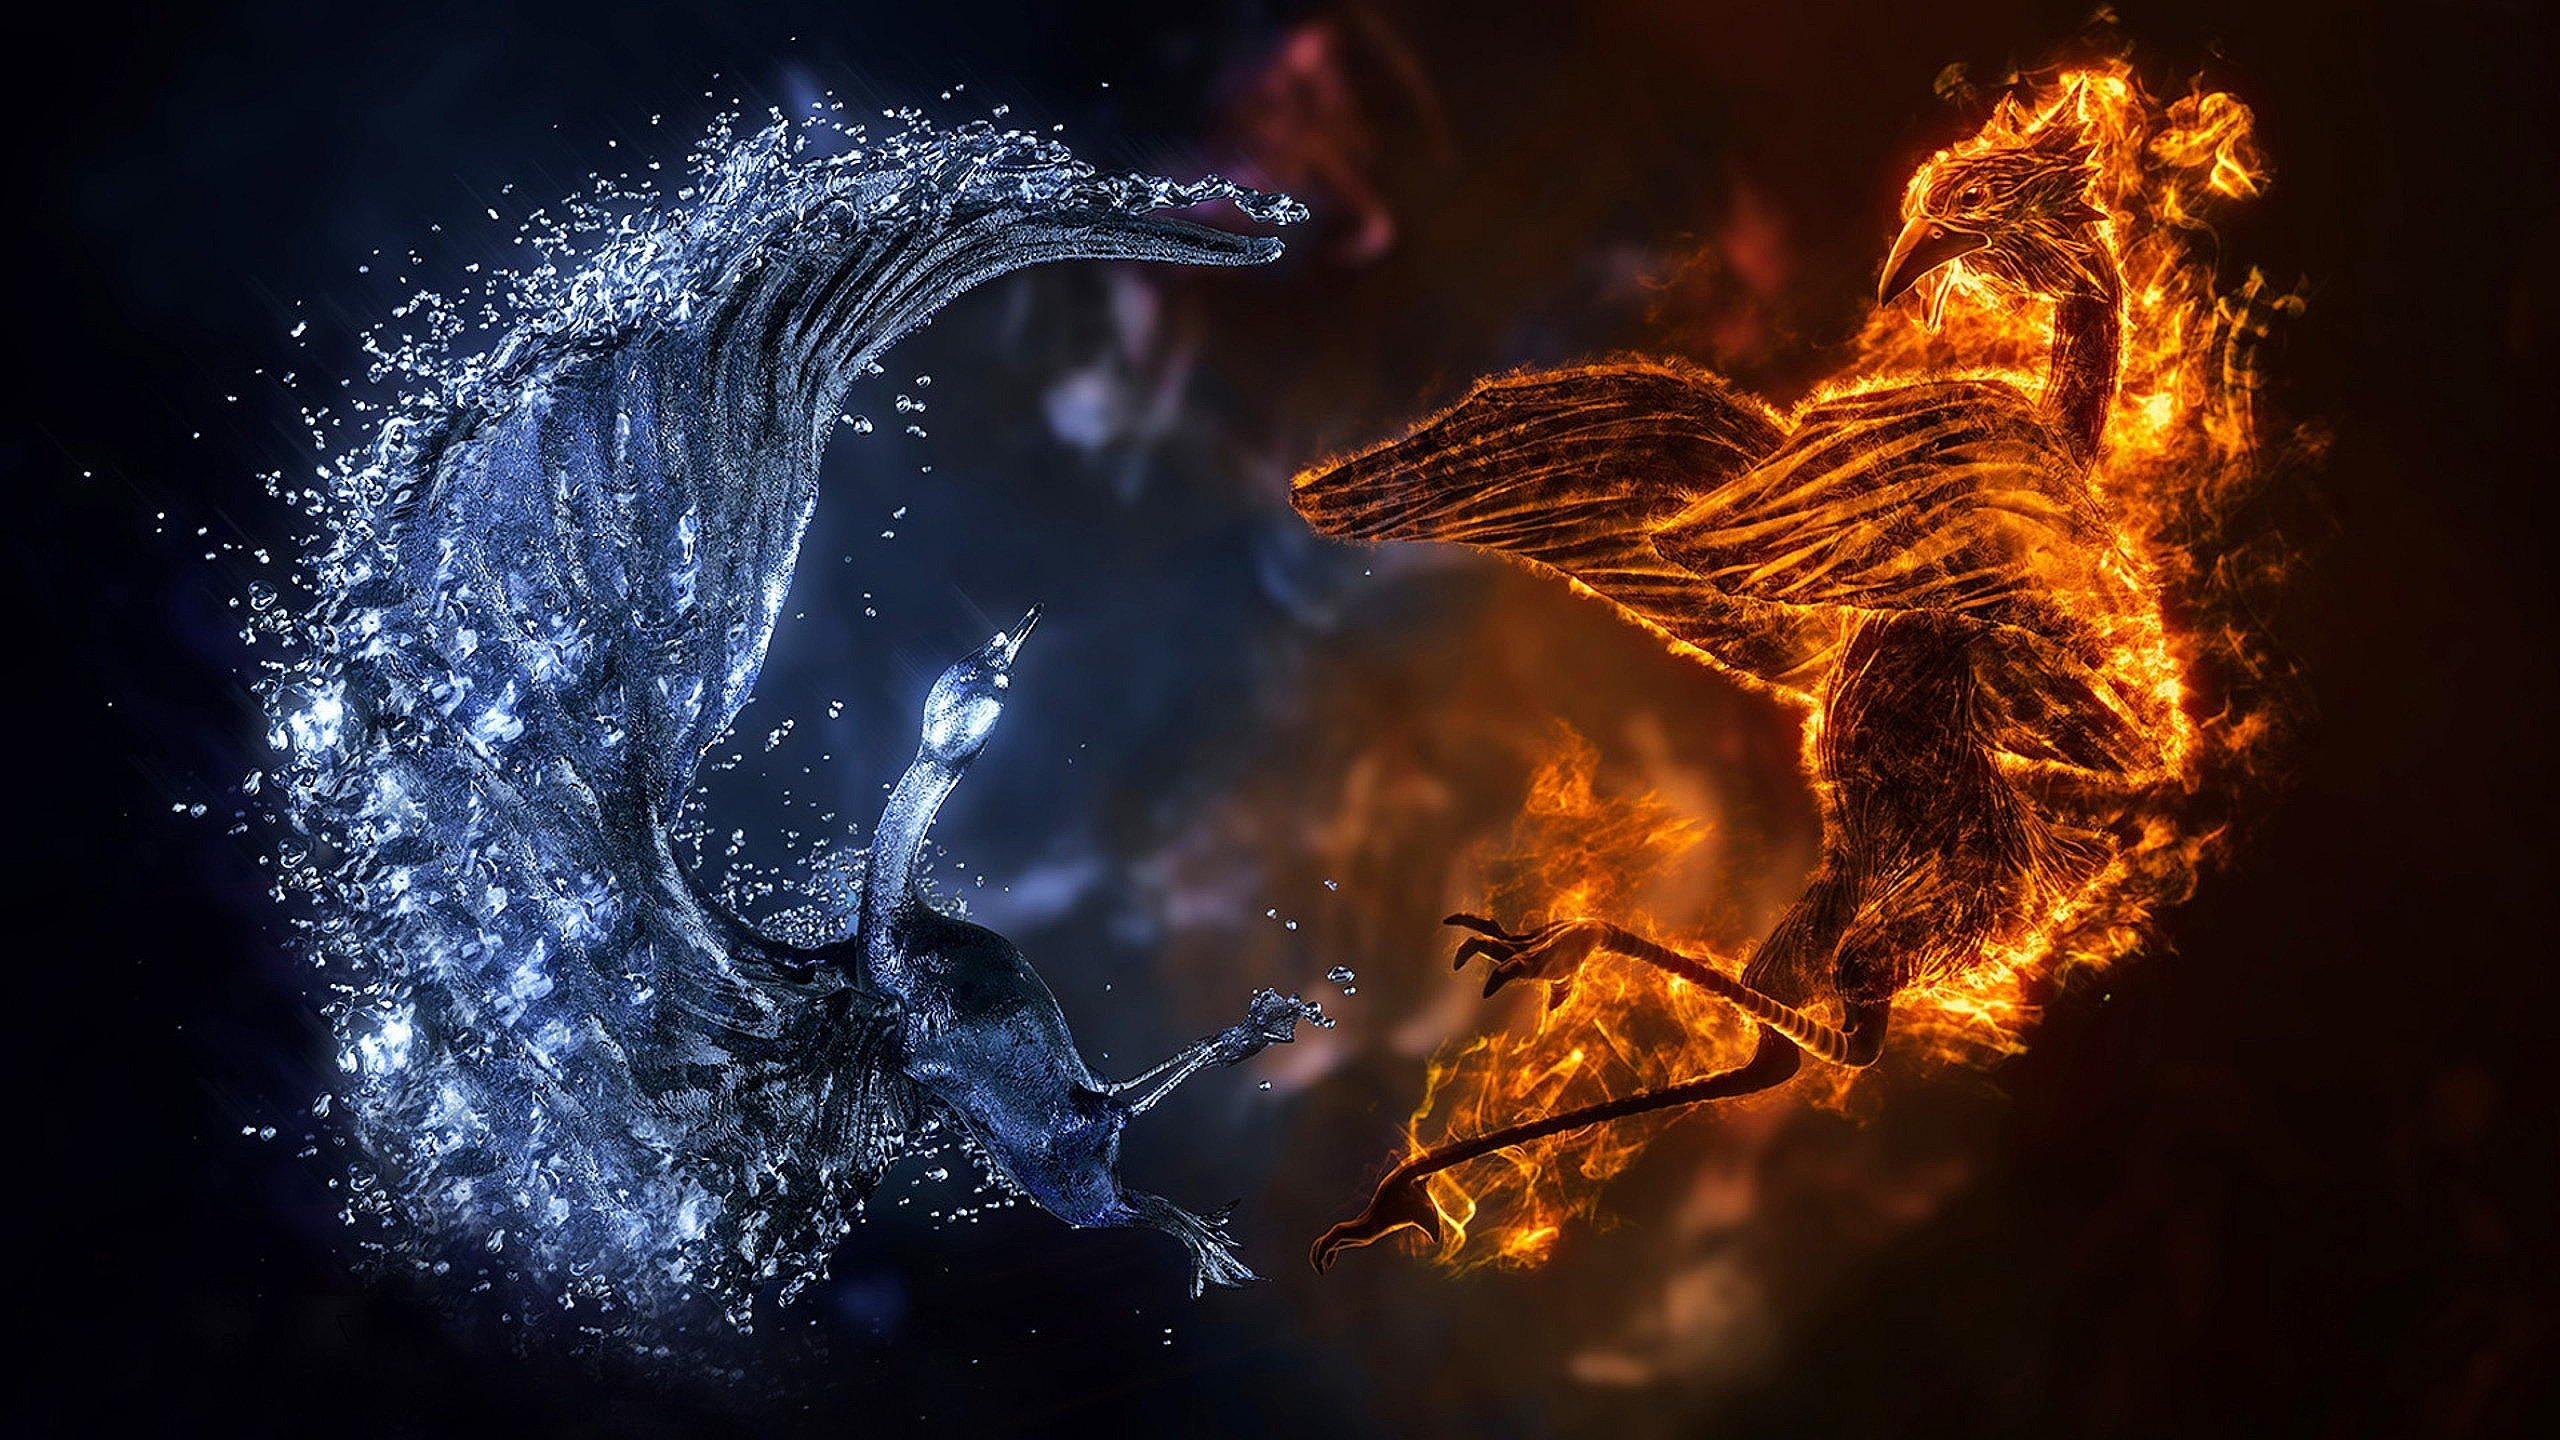 fire wallpaper ice birds